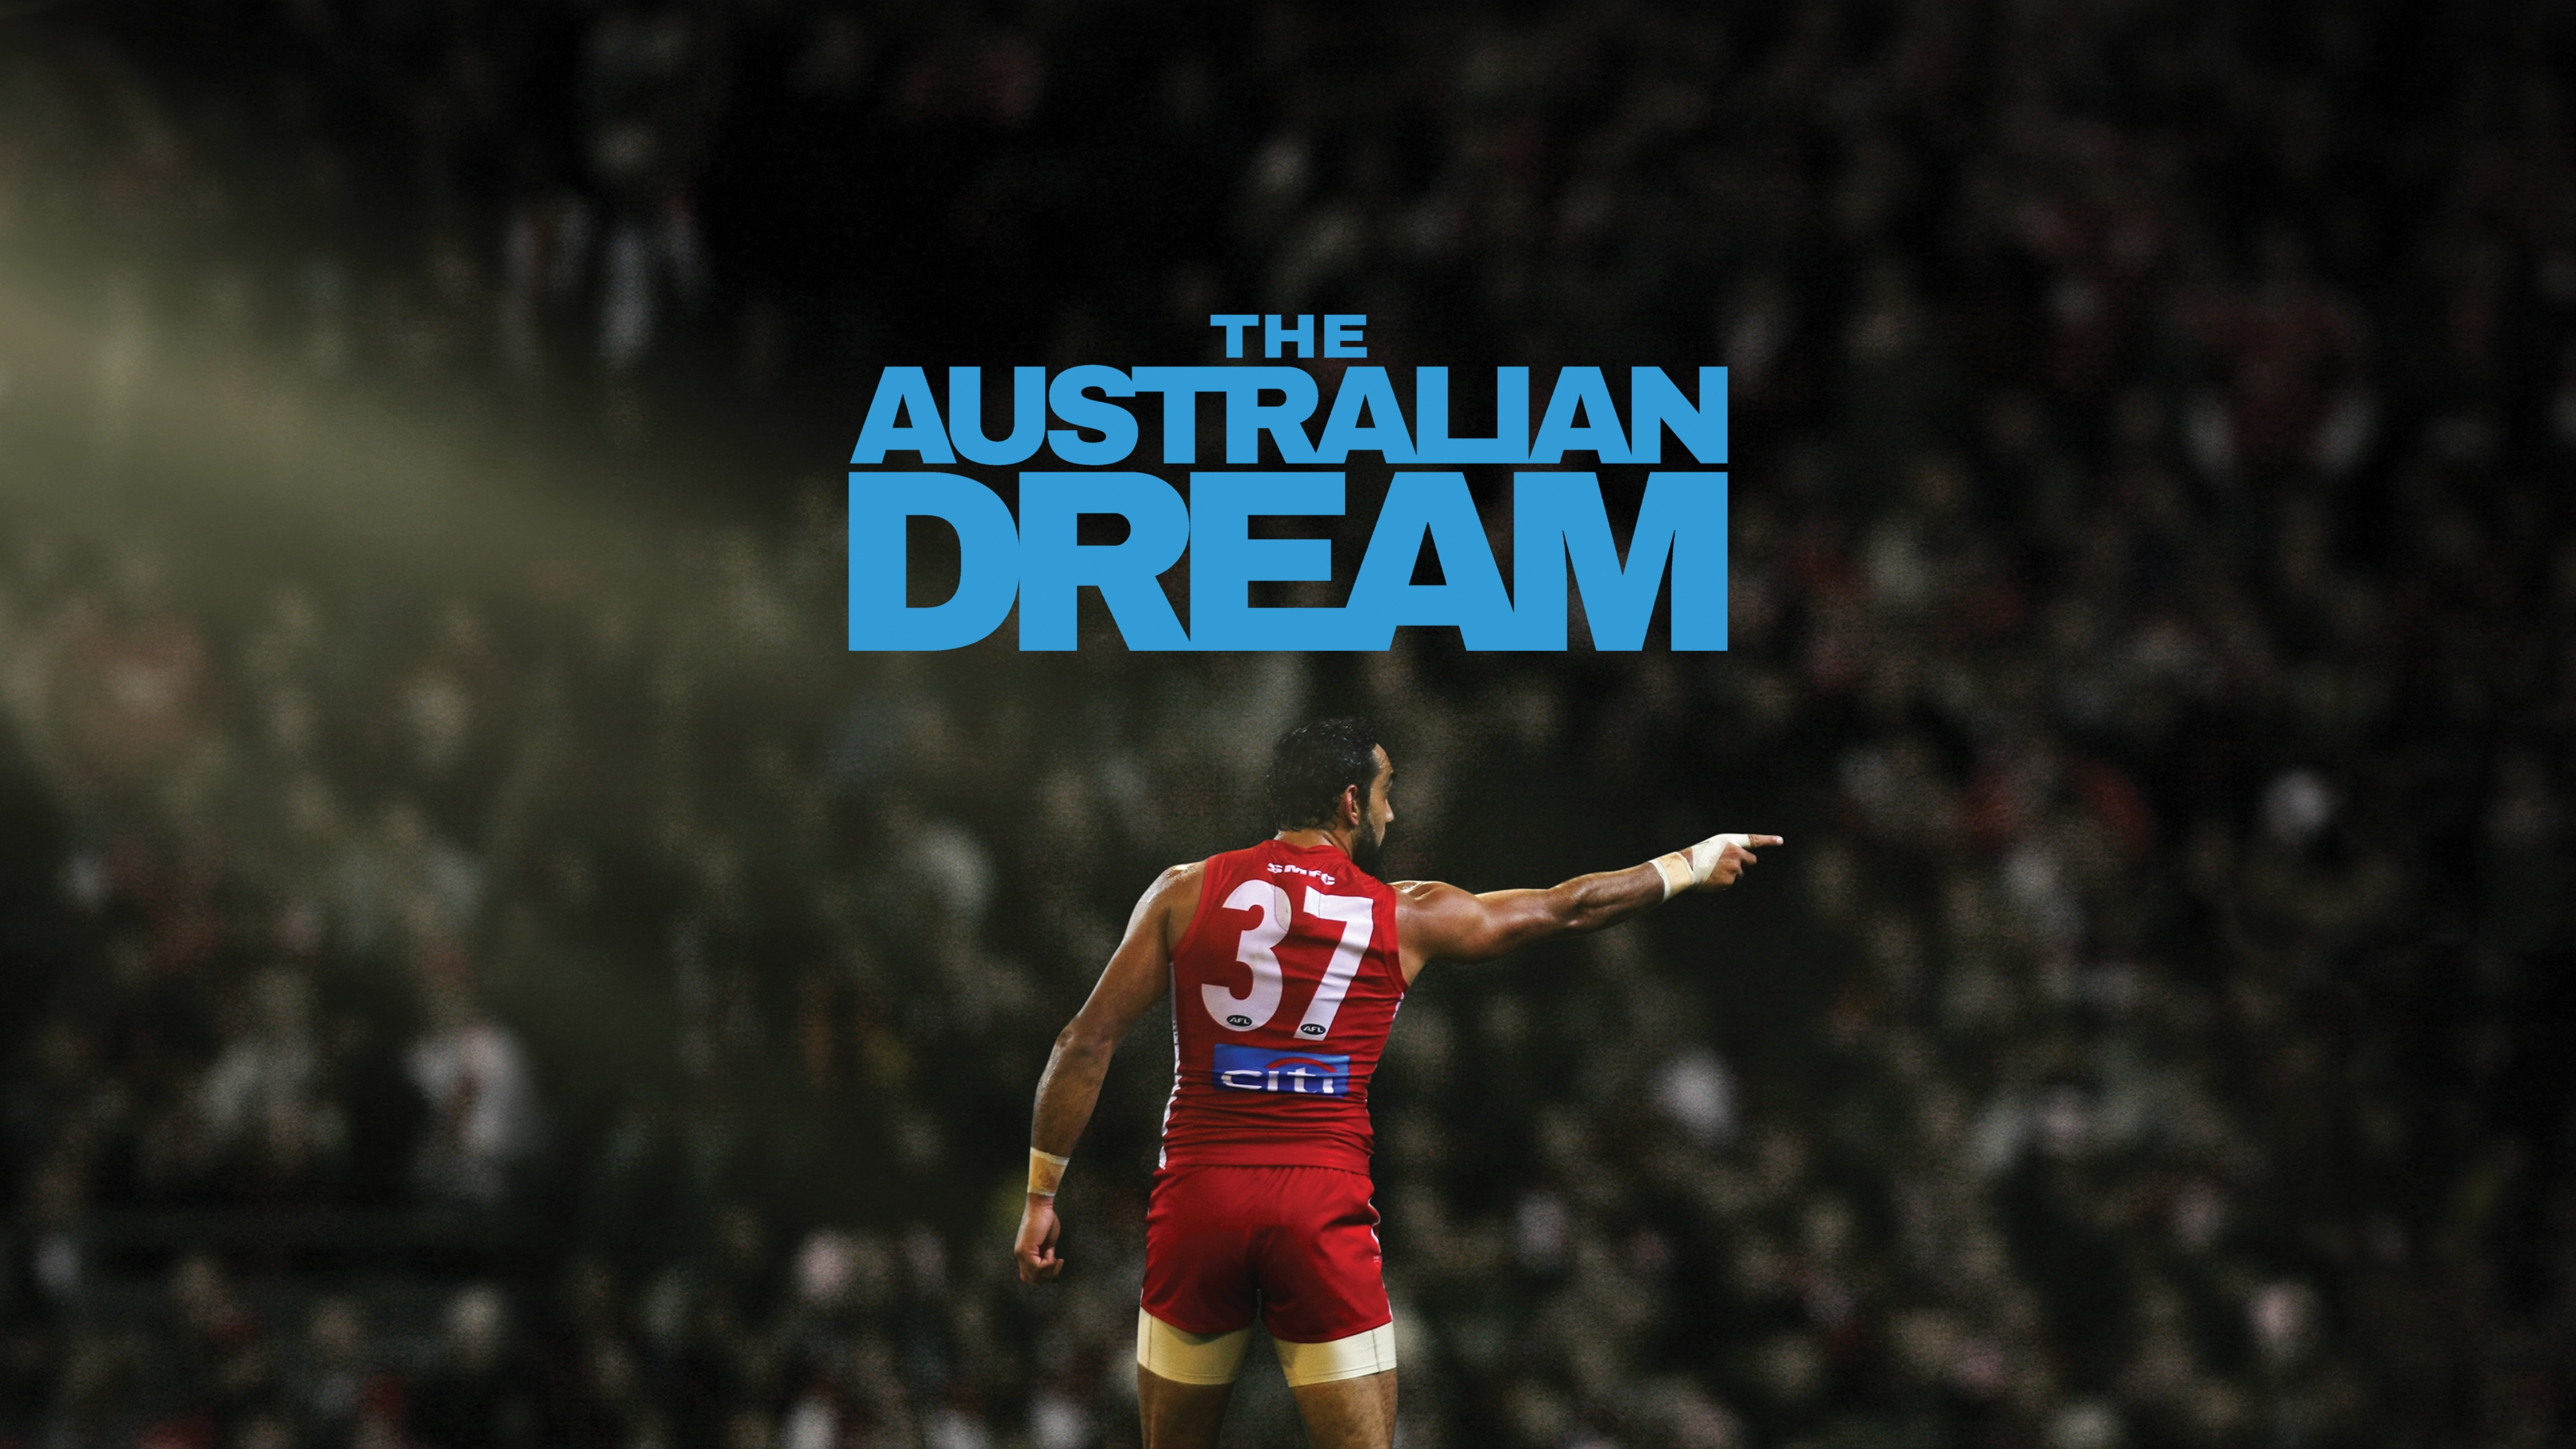 The Australian Dream - Buy